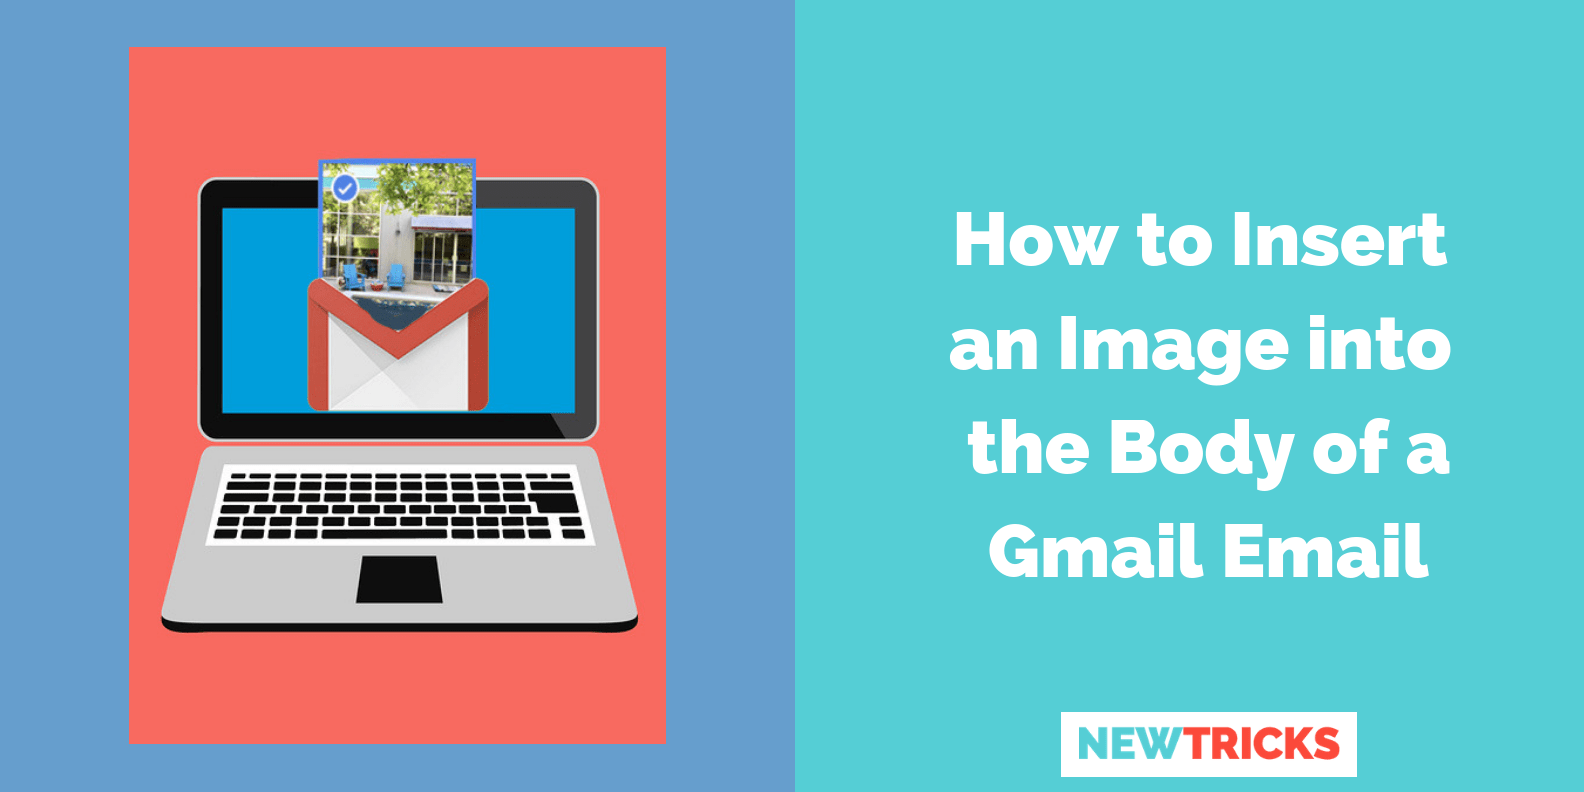 How to Insert an Image Into the Body of a Gmail Email